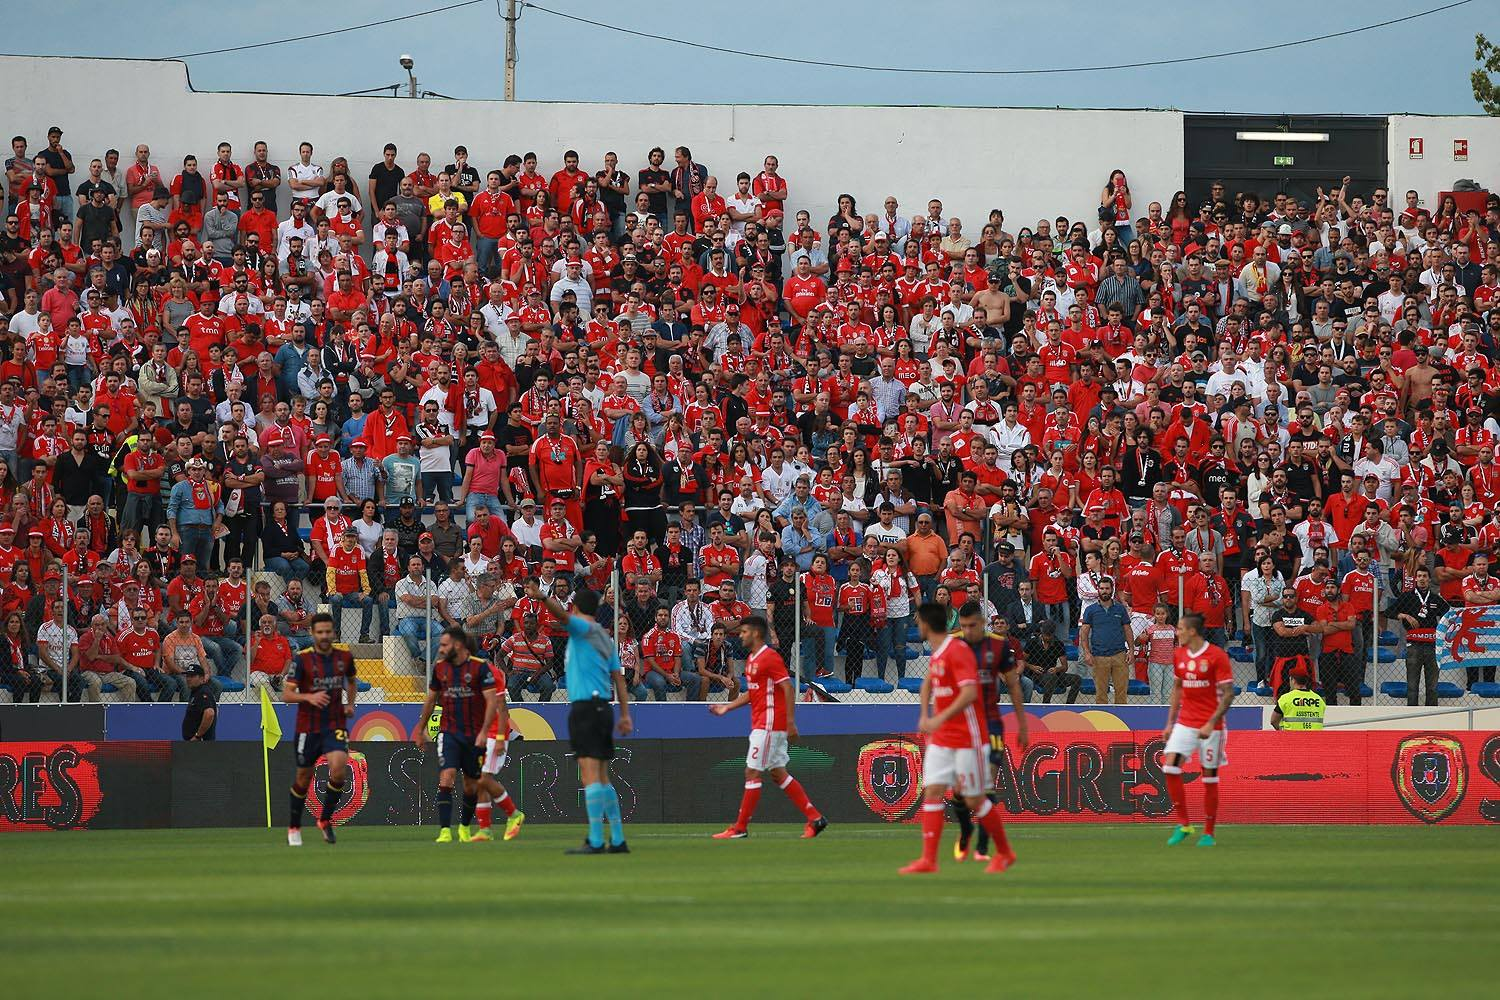 Os golos: GD Chaves 0-2 SL Benfica